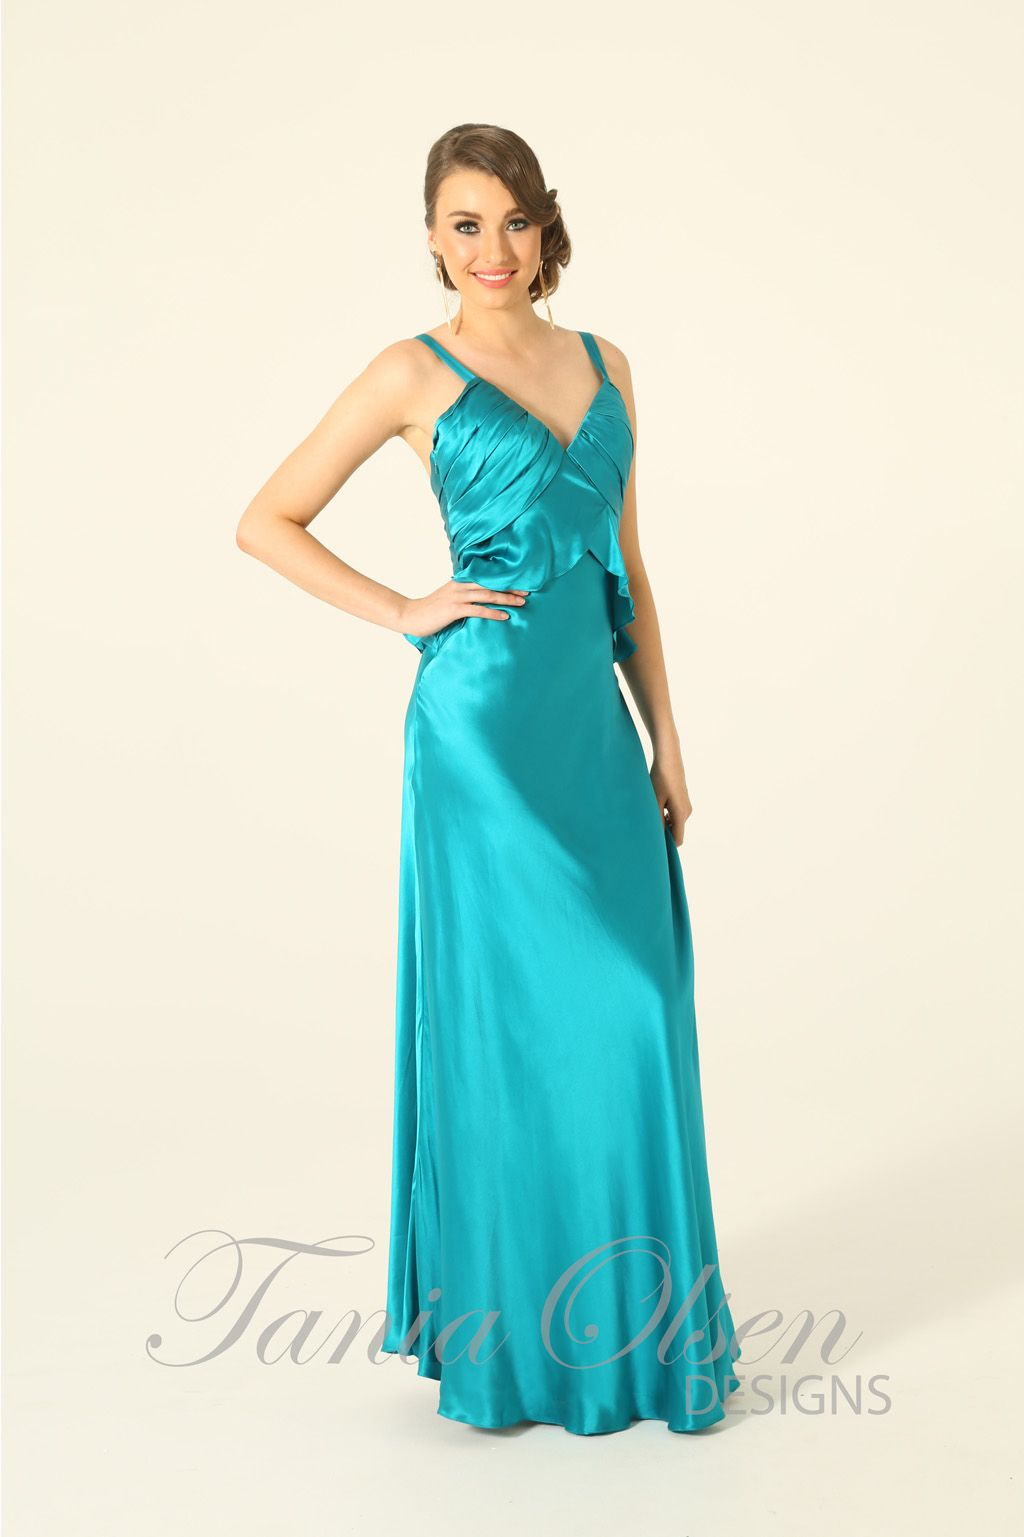 Make a statement in this stunning turquoise silk slinky formal make a statement in this stunning turquoise silk slinky formal dress bias cut satin finish ombrellifo Gallery